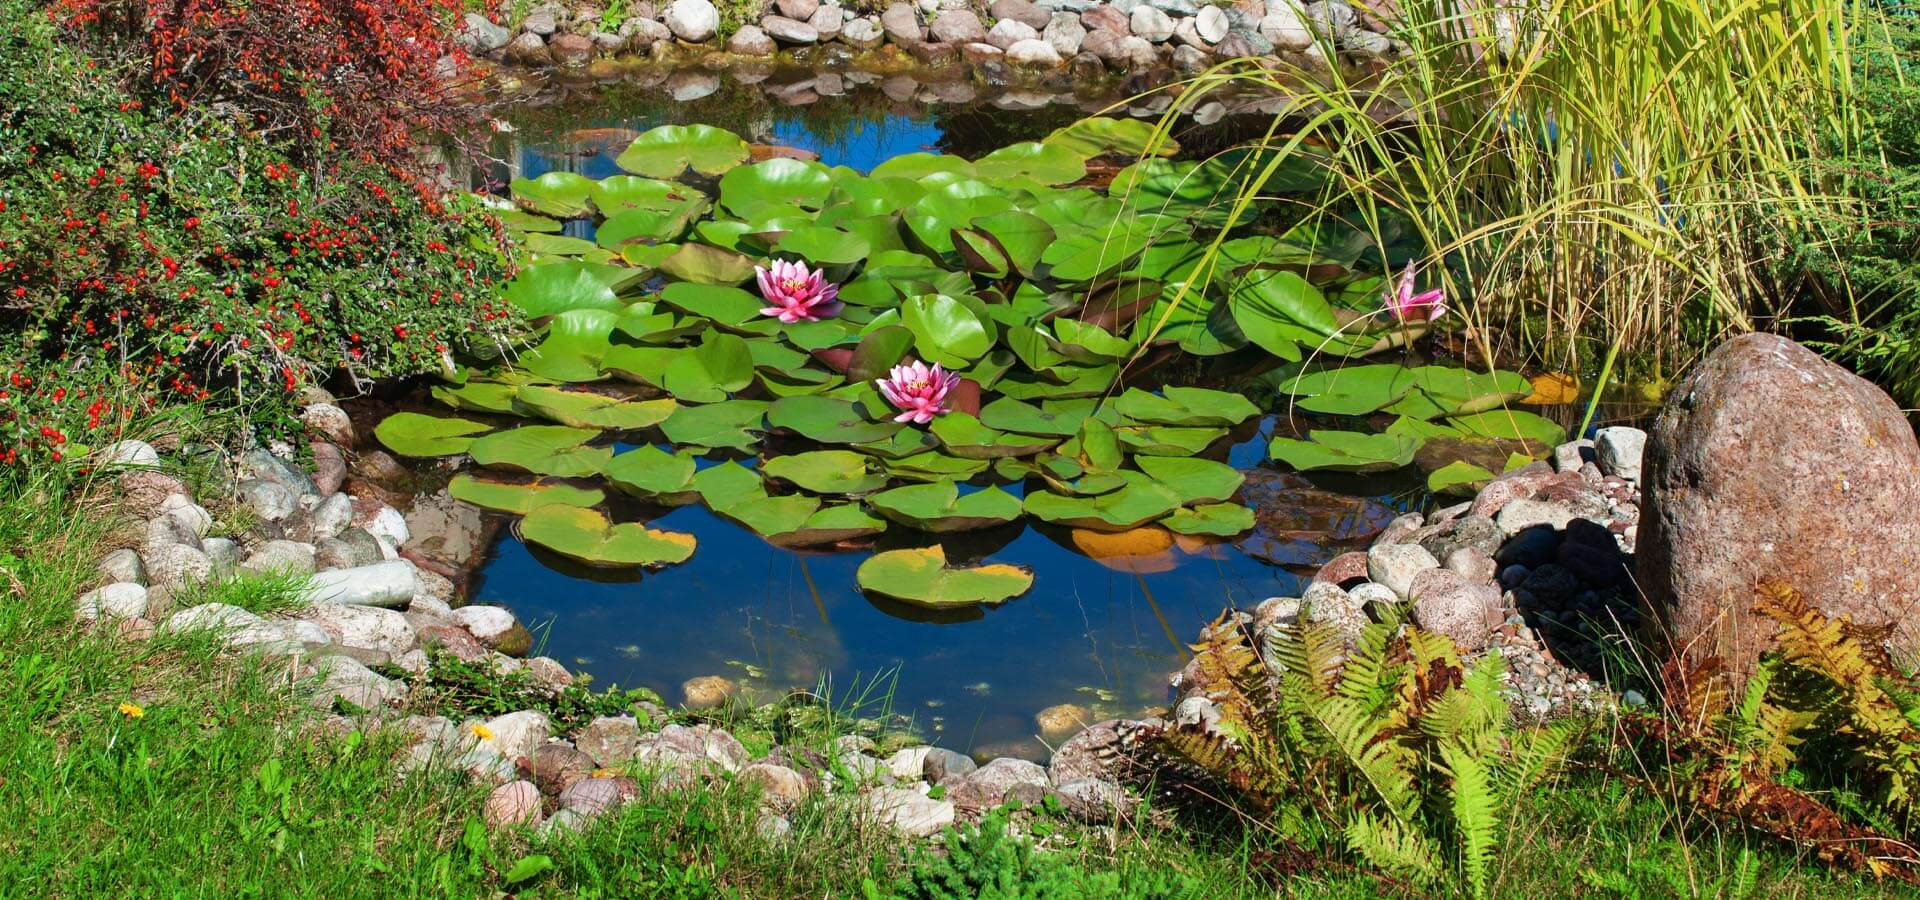 Using Scottish pebbles in your water feature: Our top tips